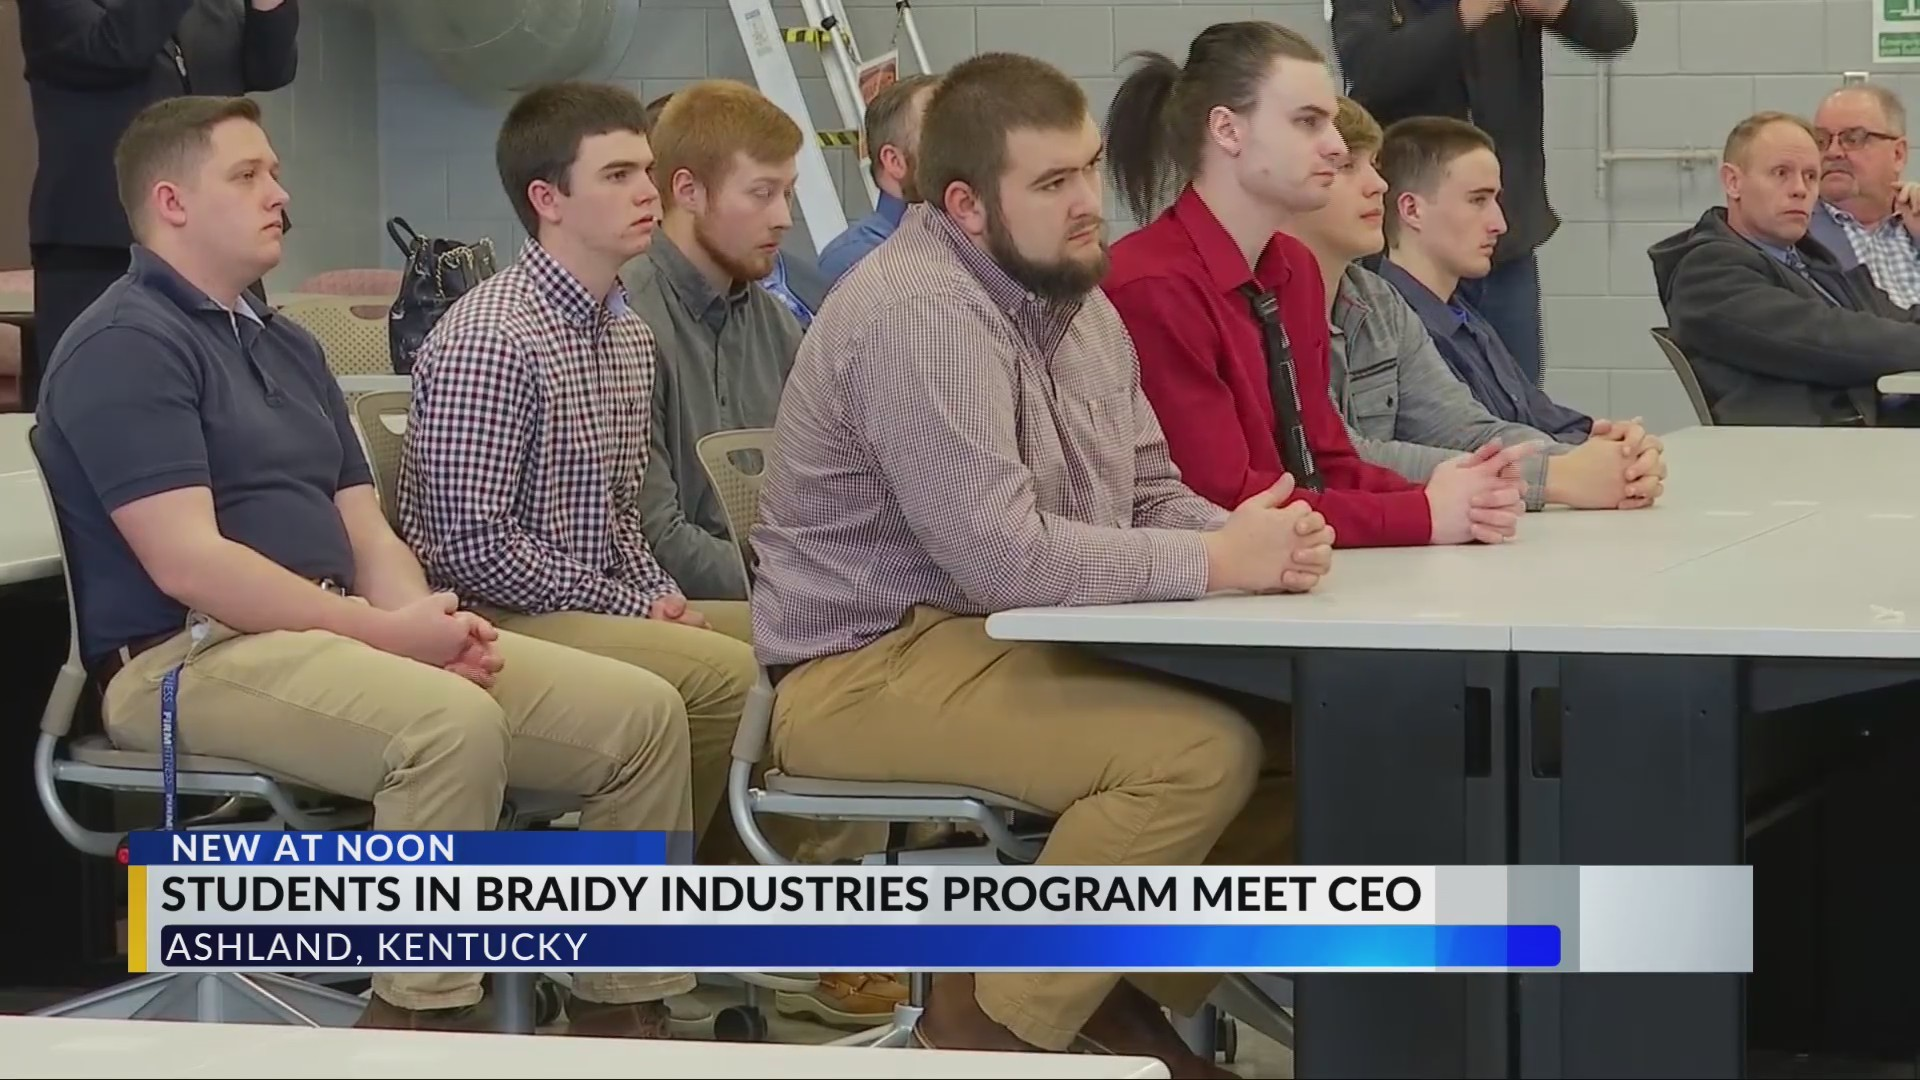 Students in Braidy Industries Program Meet With CEO, Look Forward To Jobs